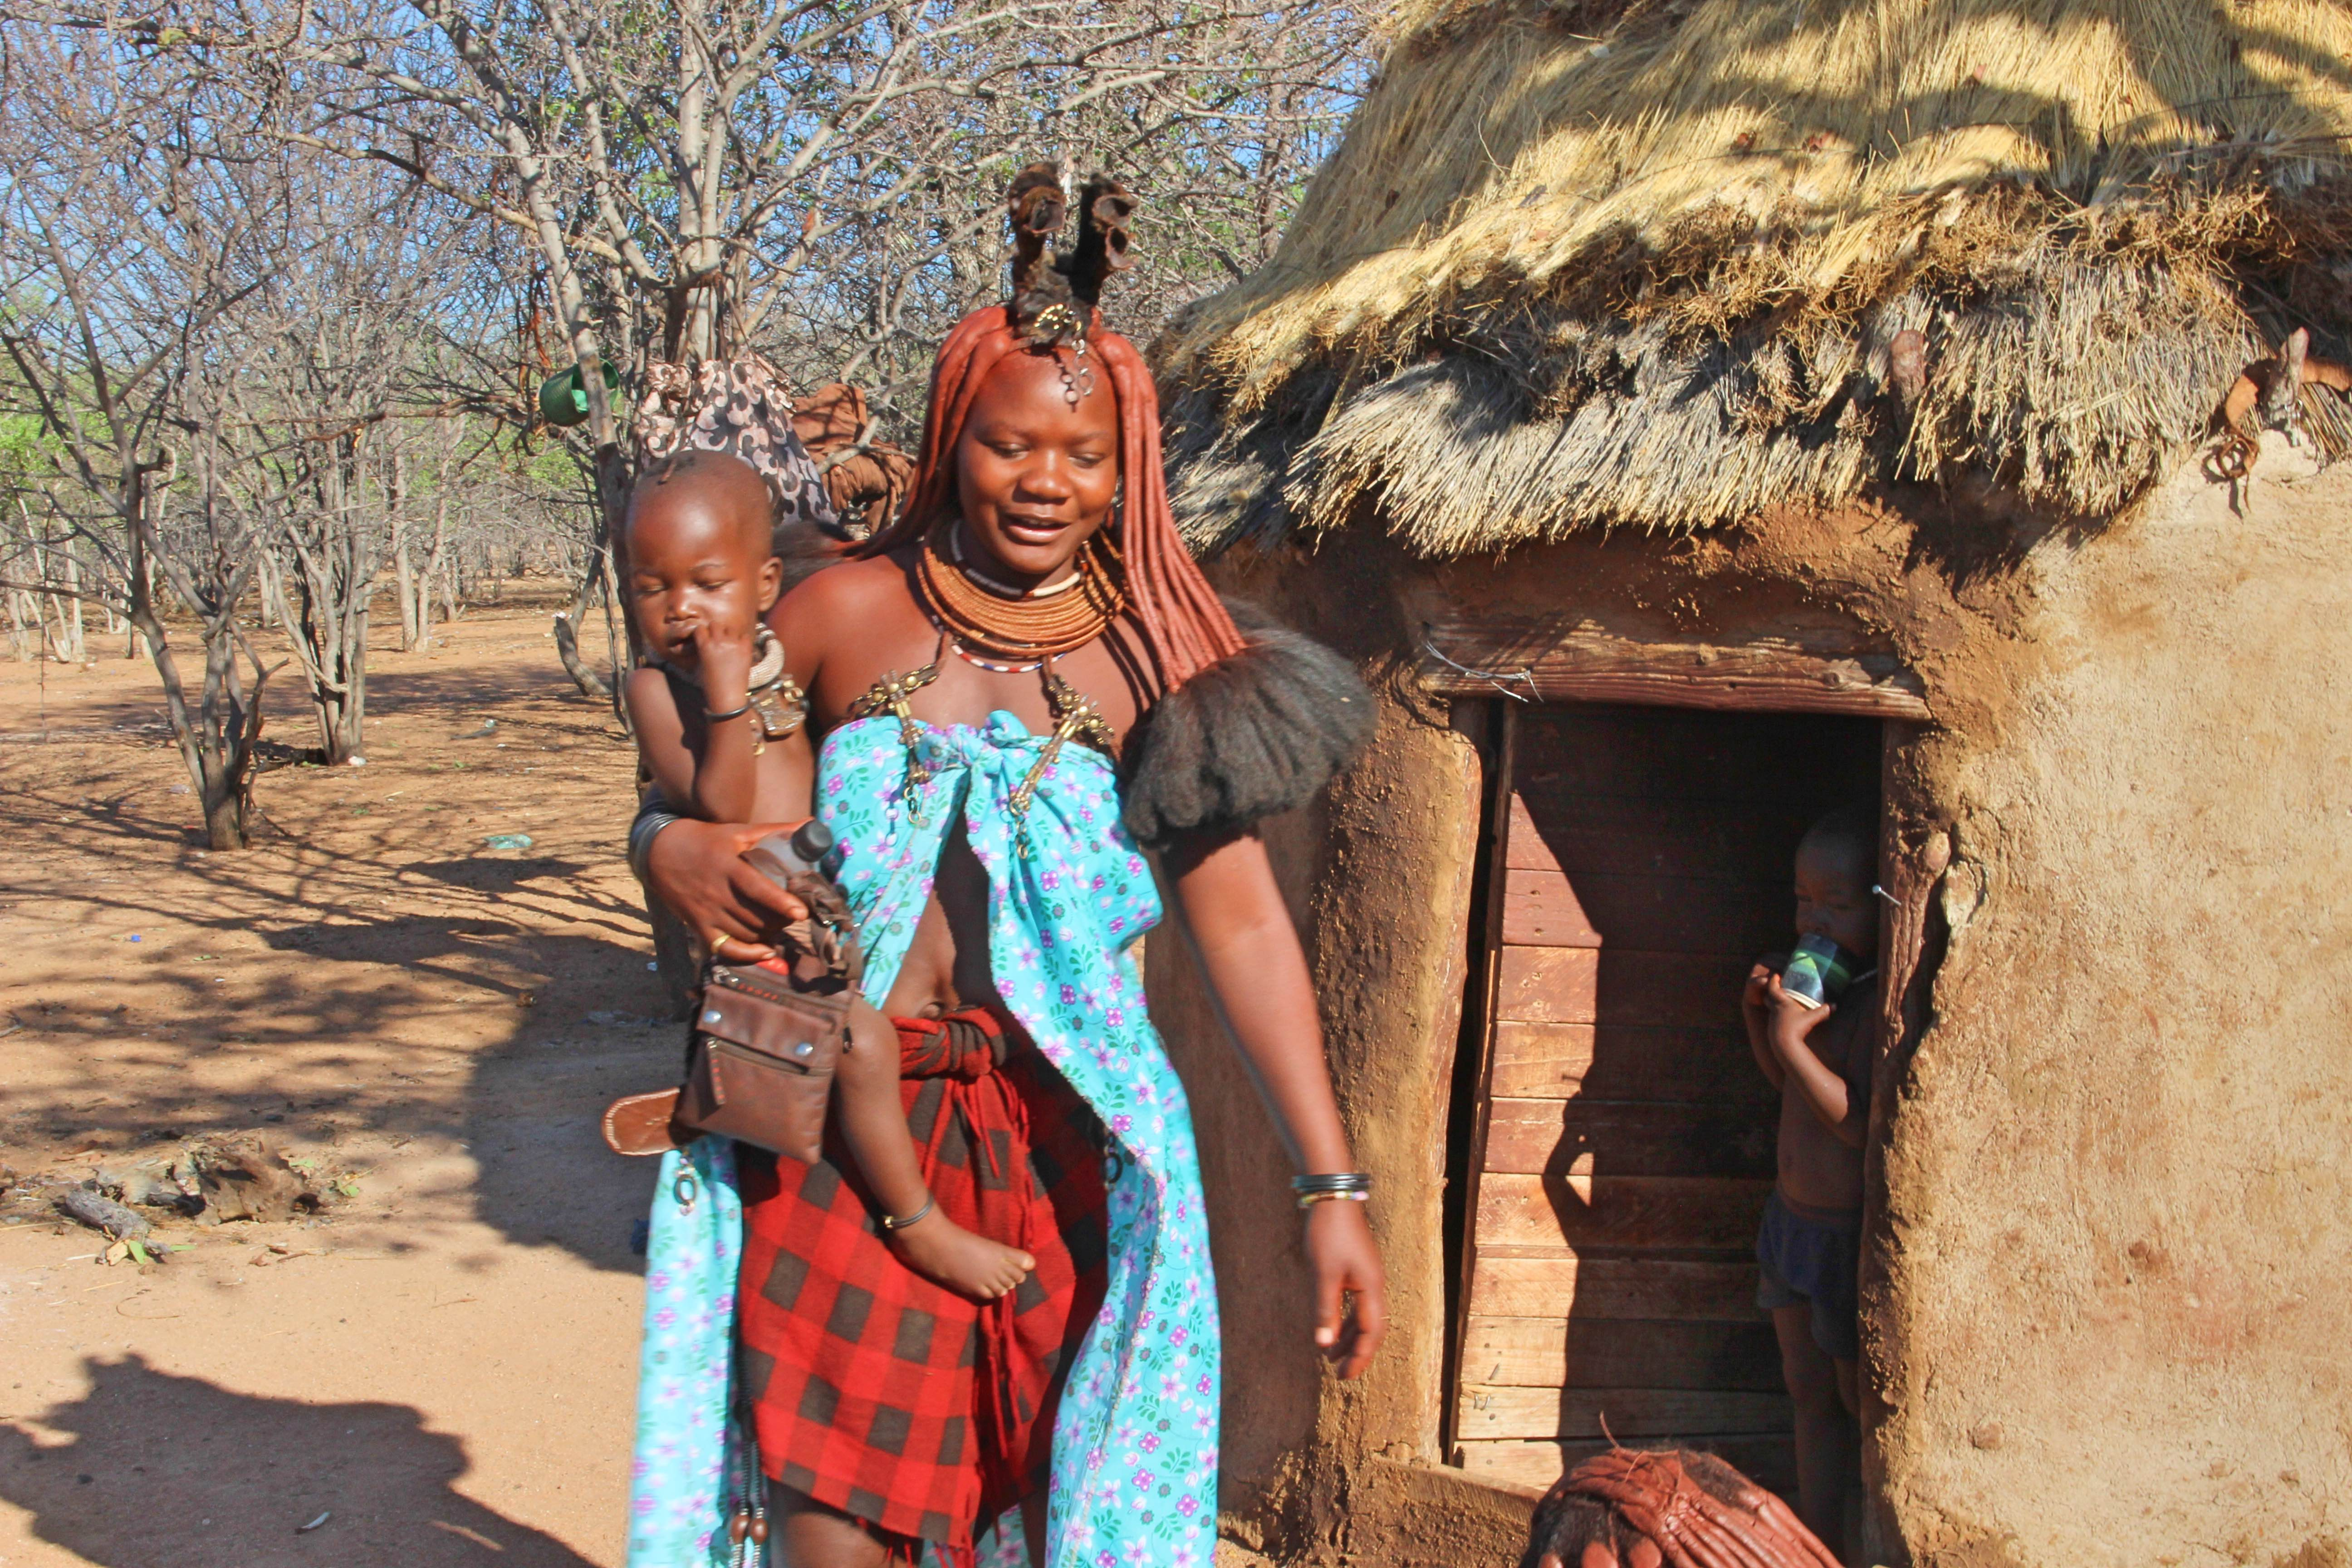 Weltreise_Backpacking_Namibia_Himba